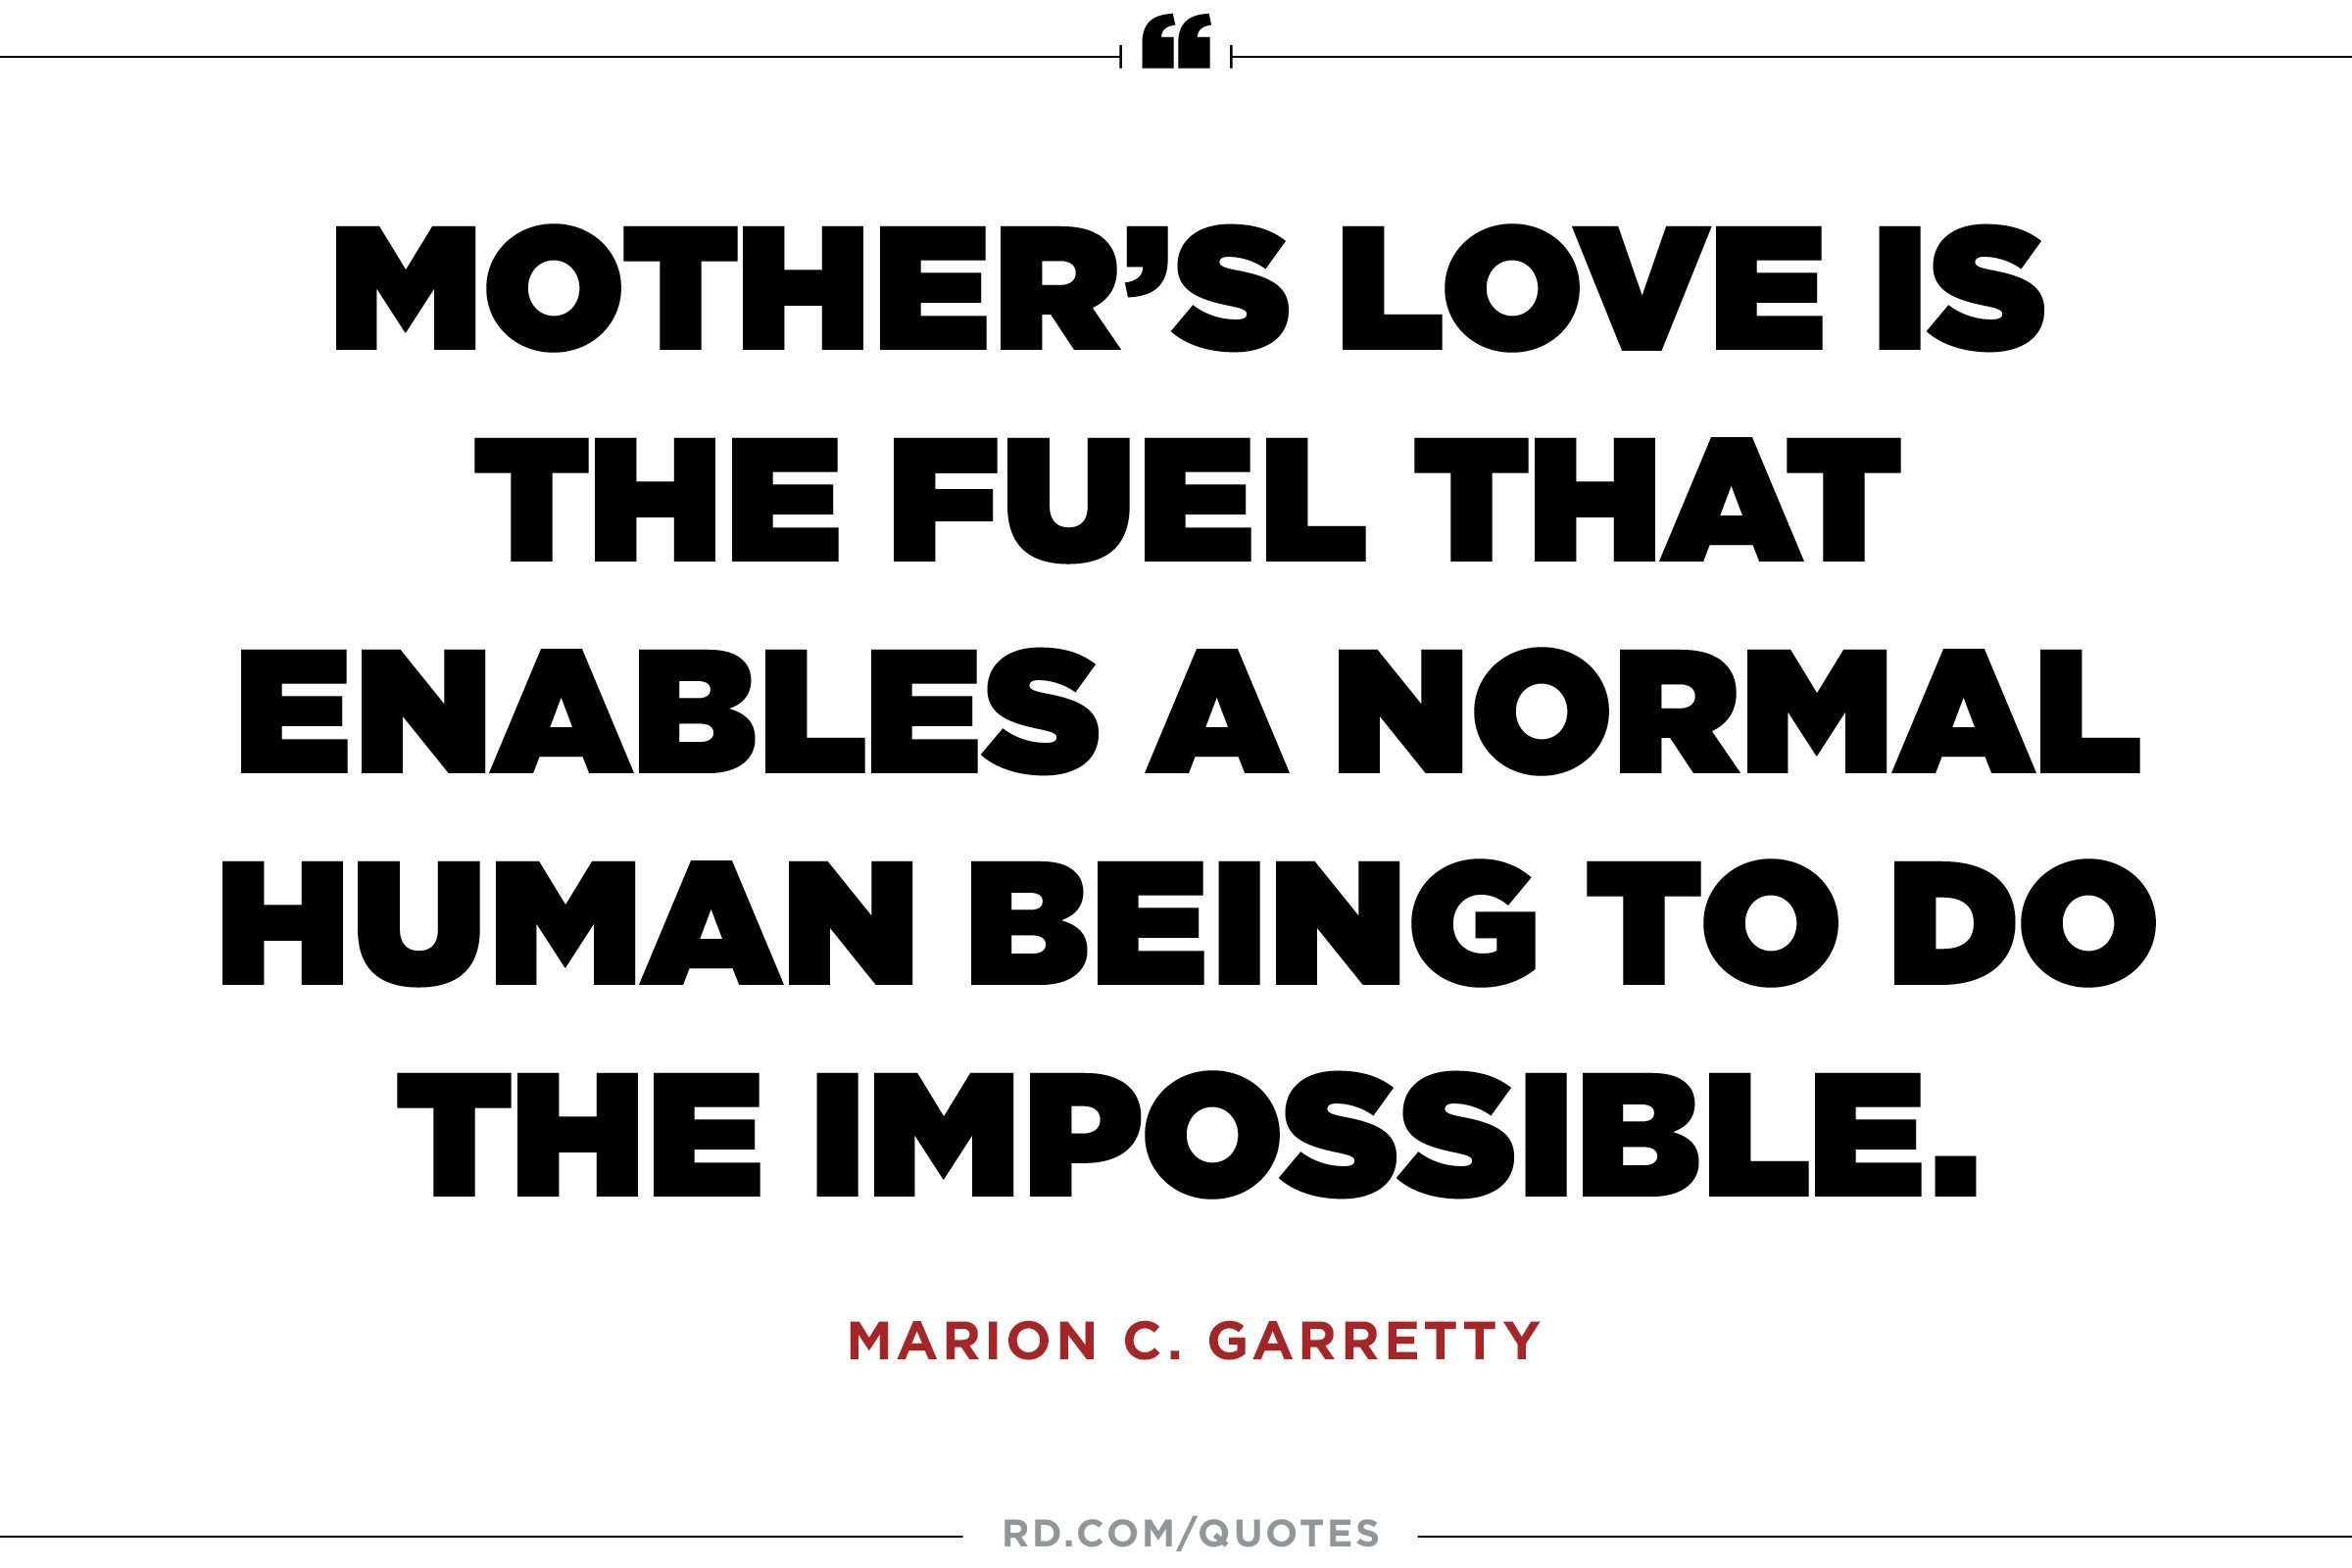 Quotes For Mothers Love 11 Quotes About Mothers That'll Make You Call Yours  Reader's Digest